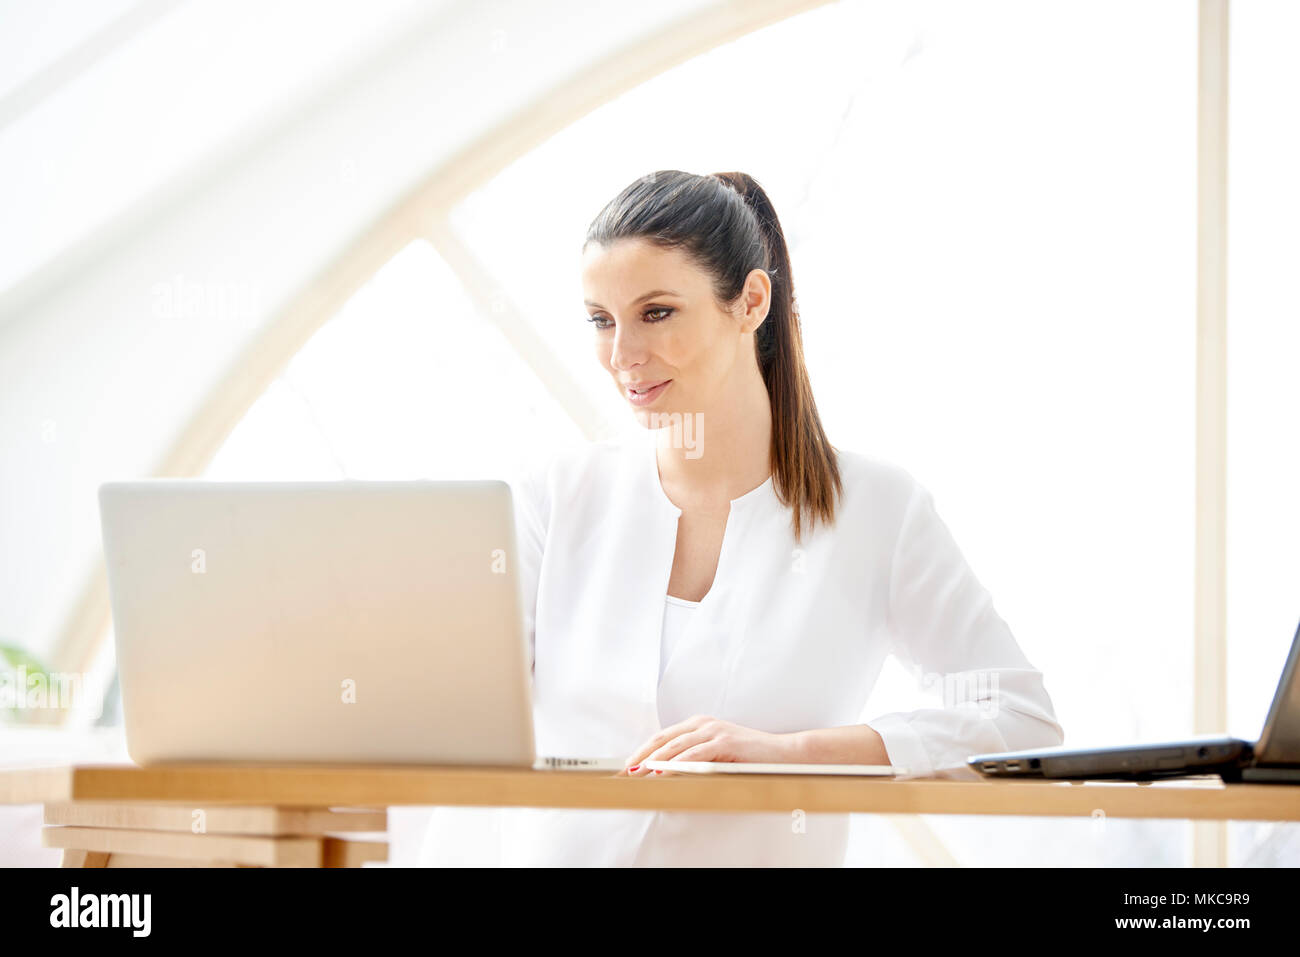 Portrait of attractive young sales assistant businesswoman using laptop at the office. - Stock Image